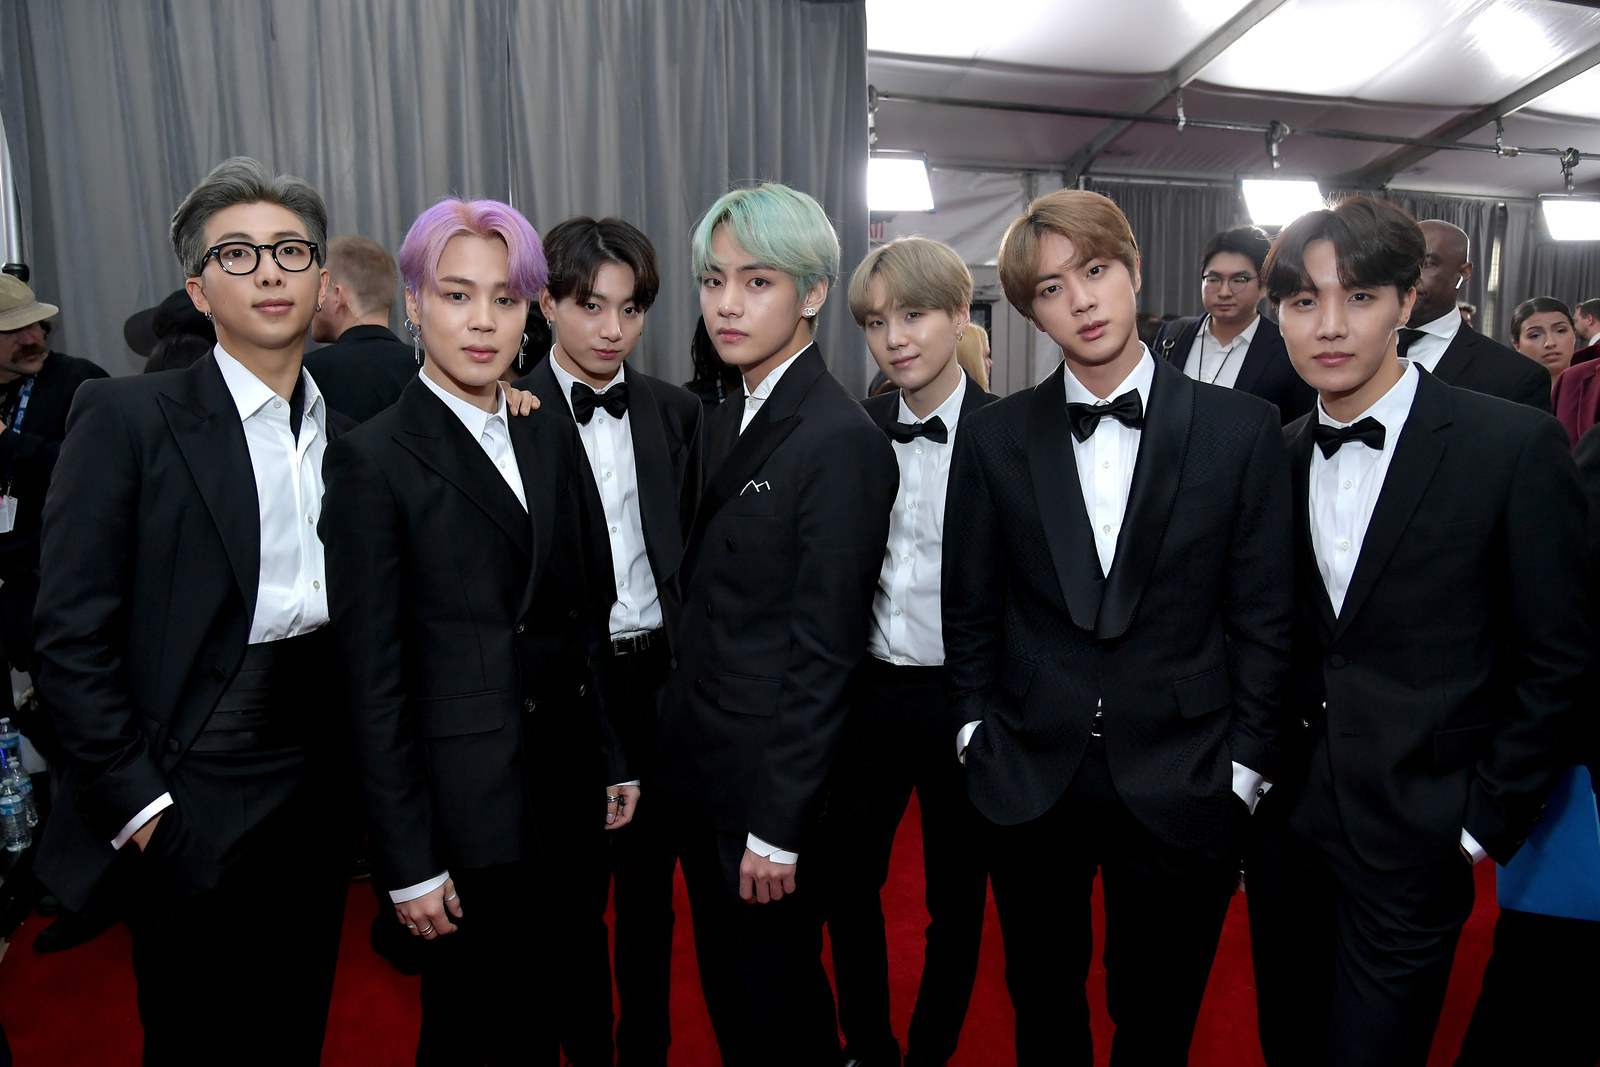 Everyone's hair looks amazing and perfectly swept across their foreheads (or pushed back, in RM's case), but OMG that mint, lavender, and smoky gray are to die for.Also, Jin's cocked expression is too good.